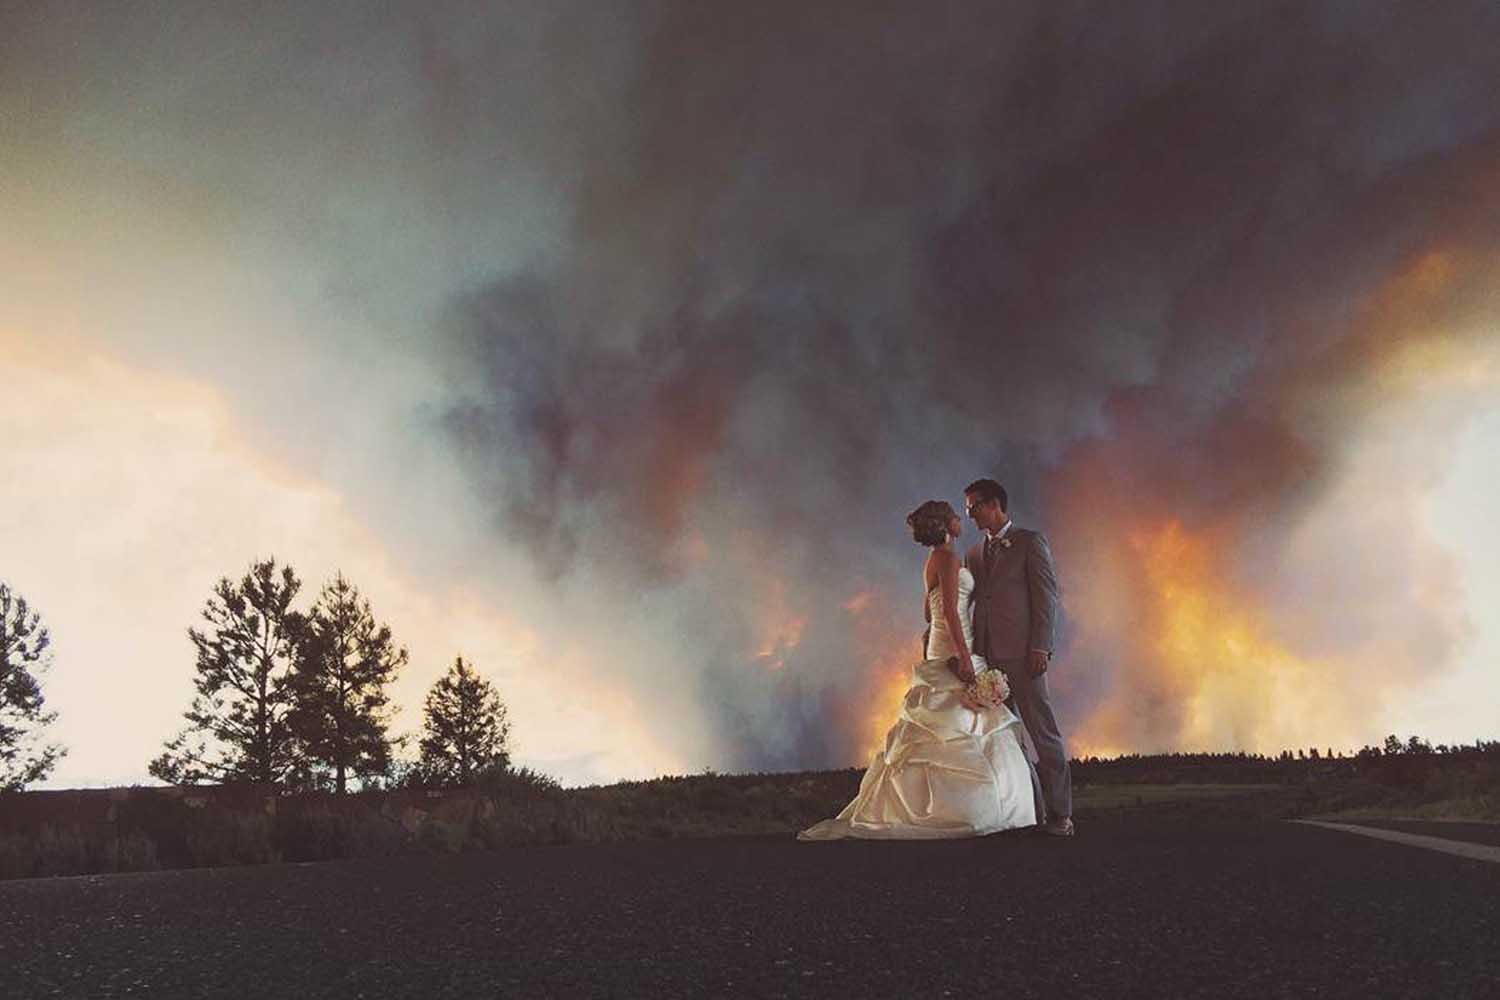 Jun. 7, 2014. Newlyweds Michael Wolber and April Hartley pose for a picture near Bend, Ore., as a wildfire burns in the background. Because of the approaching fire, the minister conducted an abbreviated ceremony and the wedding party was evacuated to a downtown Bend park for the reception.